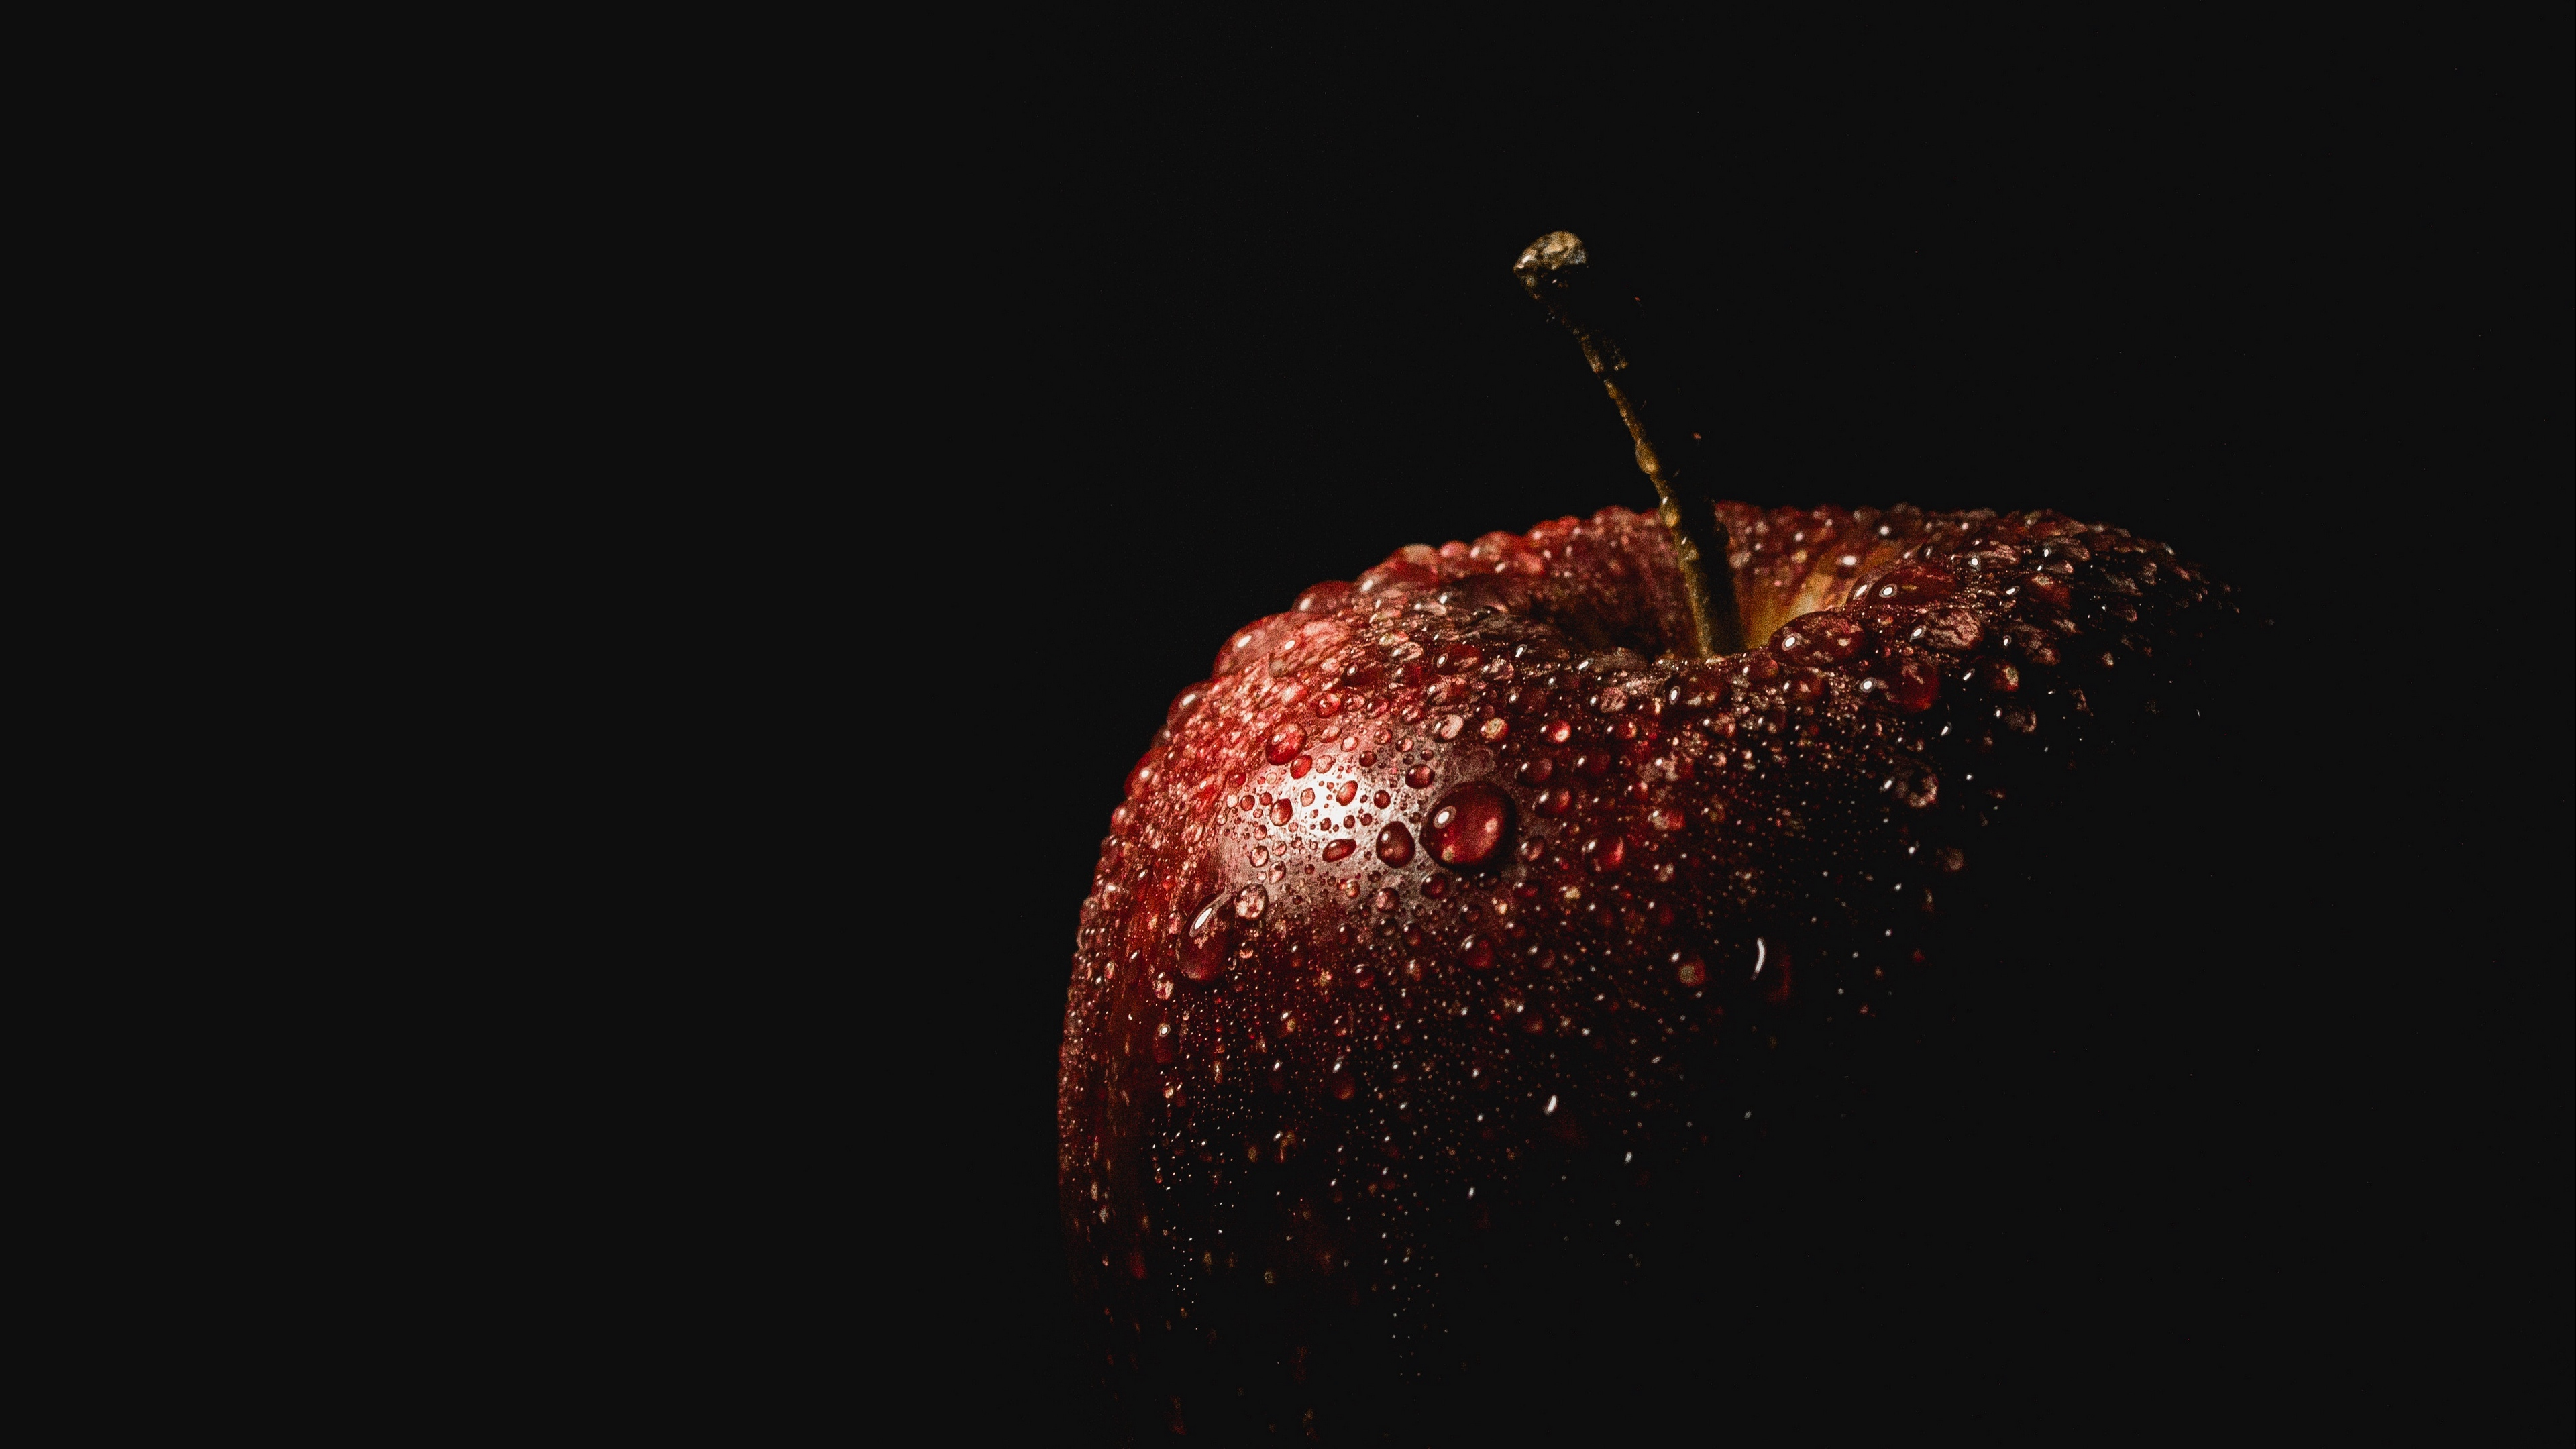 apple drops black background 4k 1540575975 - apple, drops, black background 4k - Drops, black background, Apple